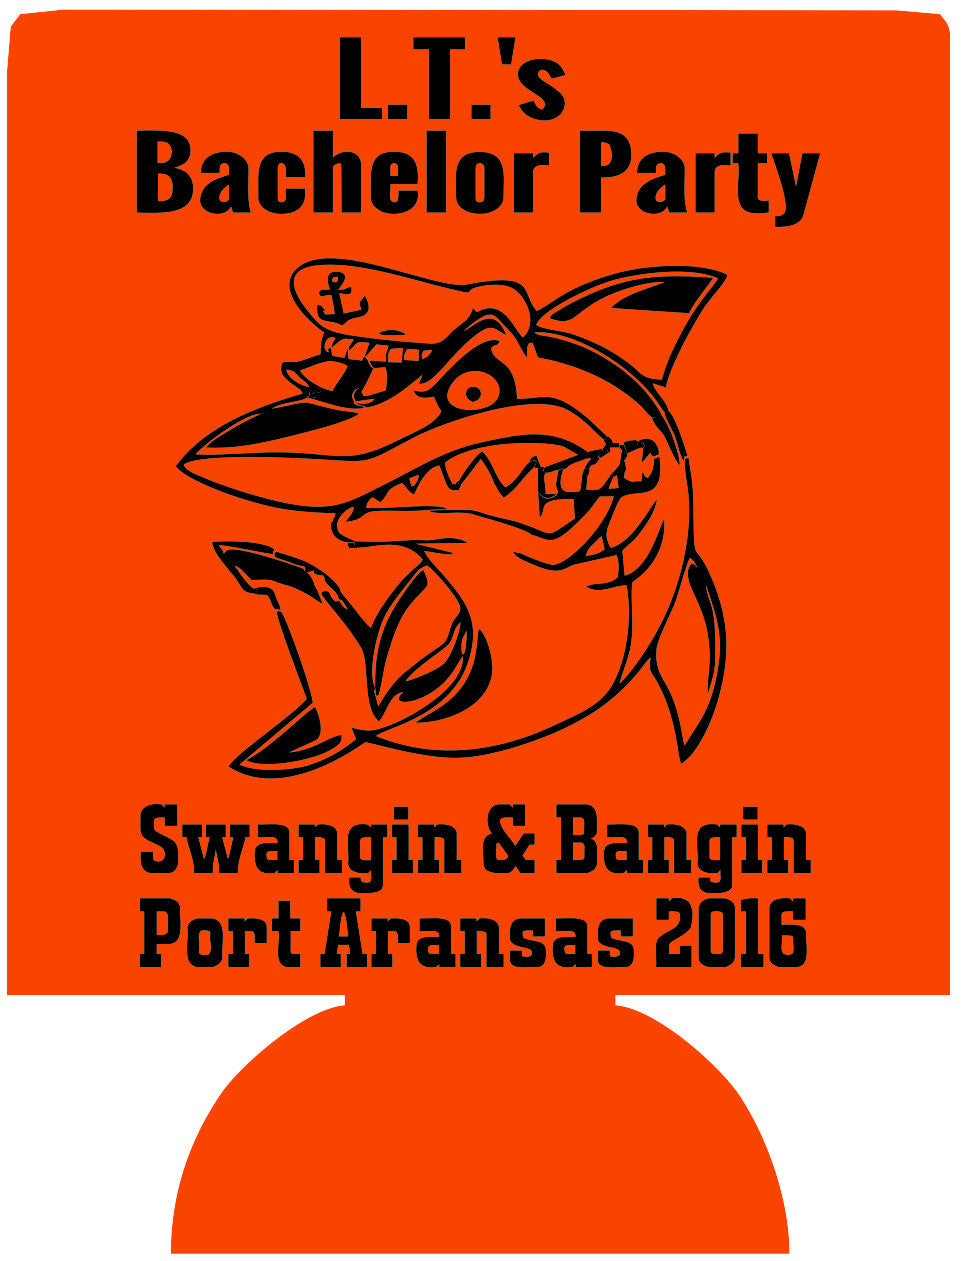 Port Aransas Texas Bachelor koozies